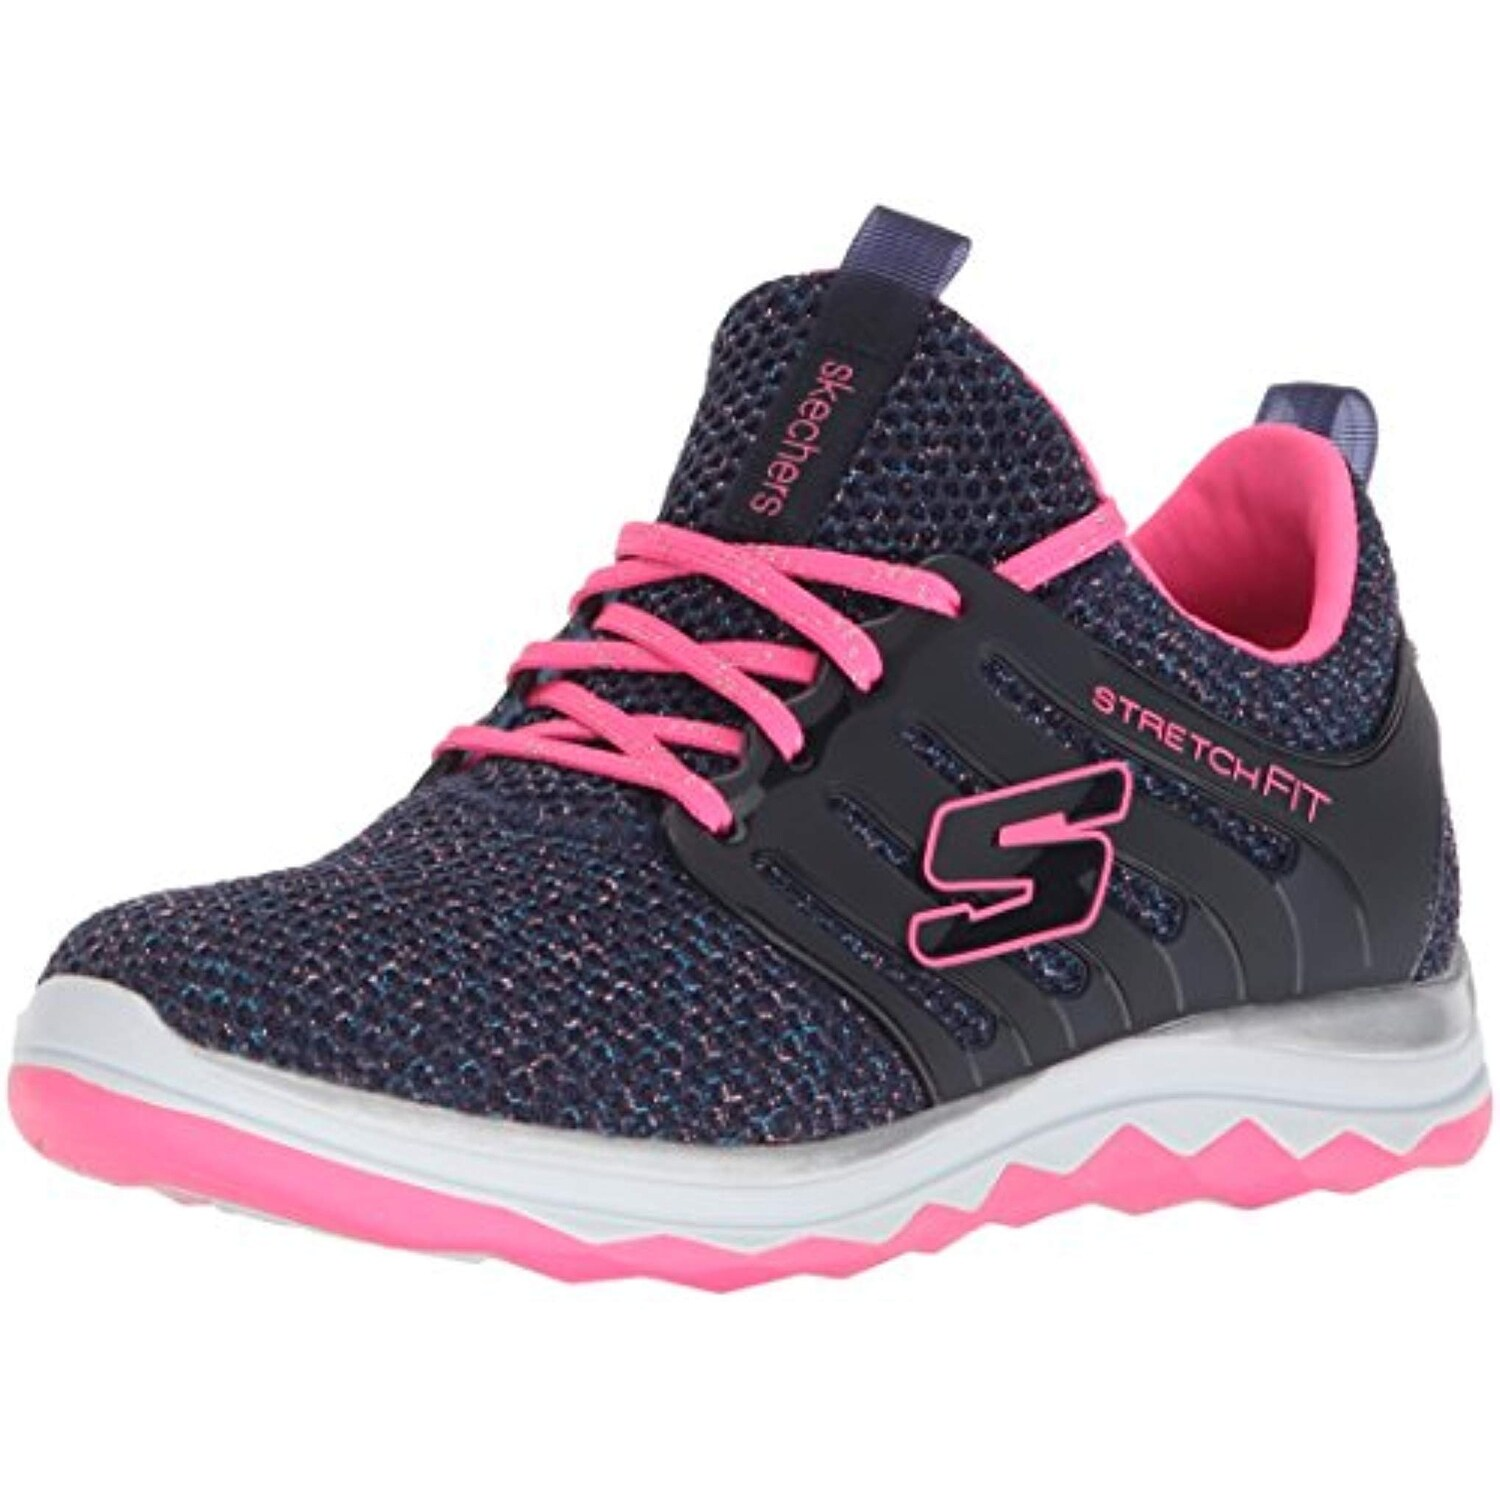 Skechers Kids Girls' Diamond Runner Sparkle Sprint Sneaker, LTPK, 4.5 Medium US Big Kid